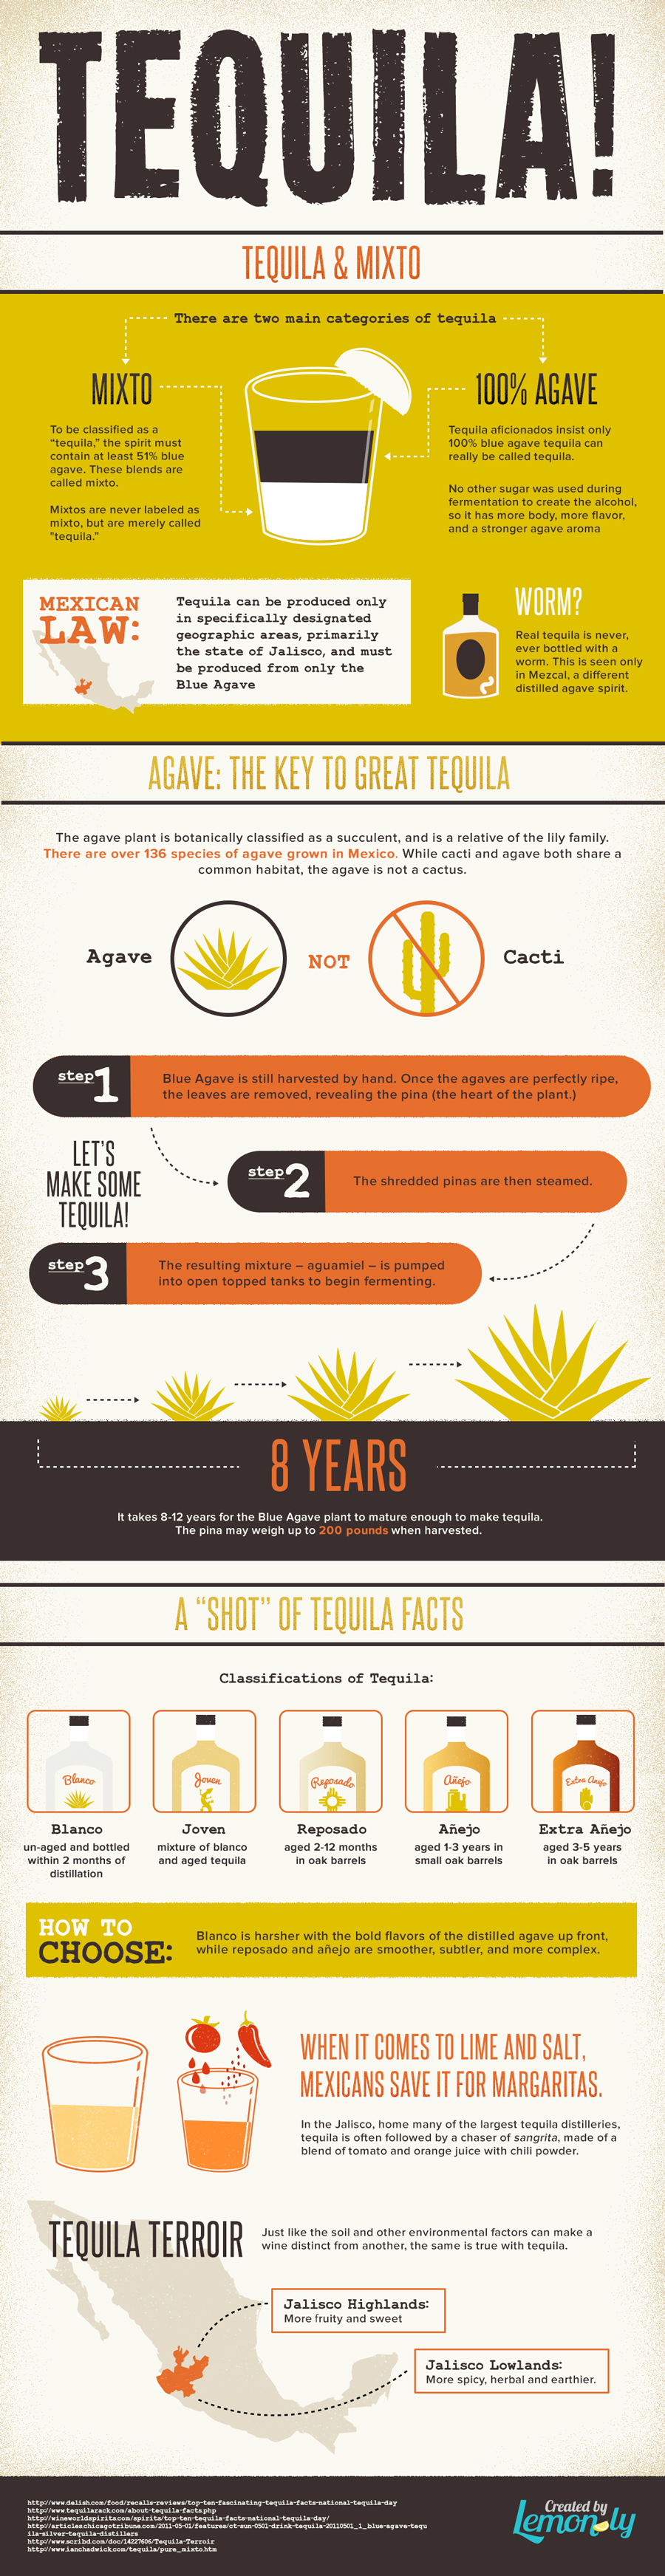 facts about tequila